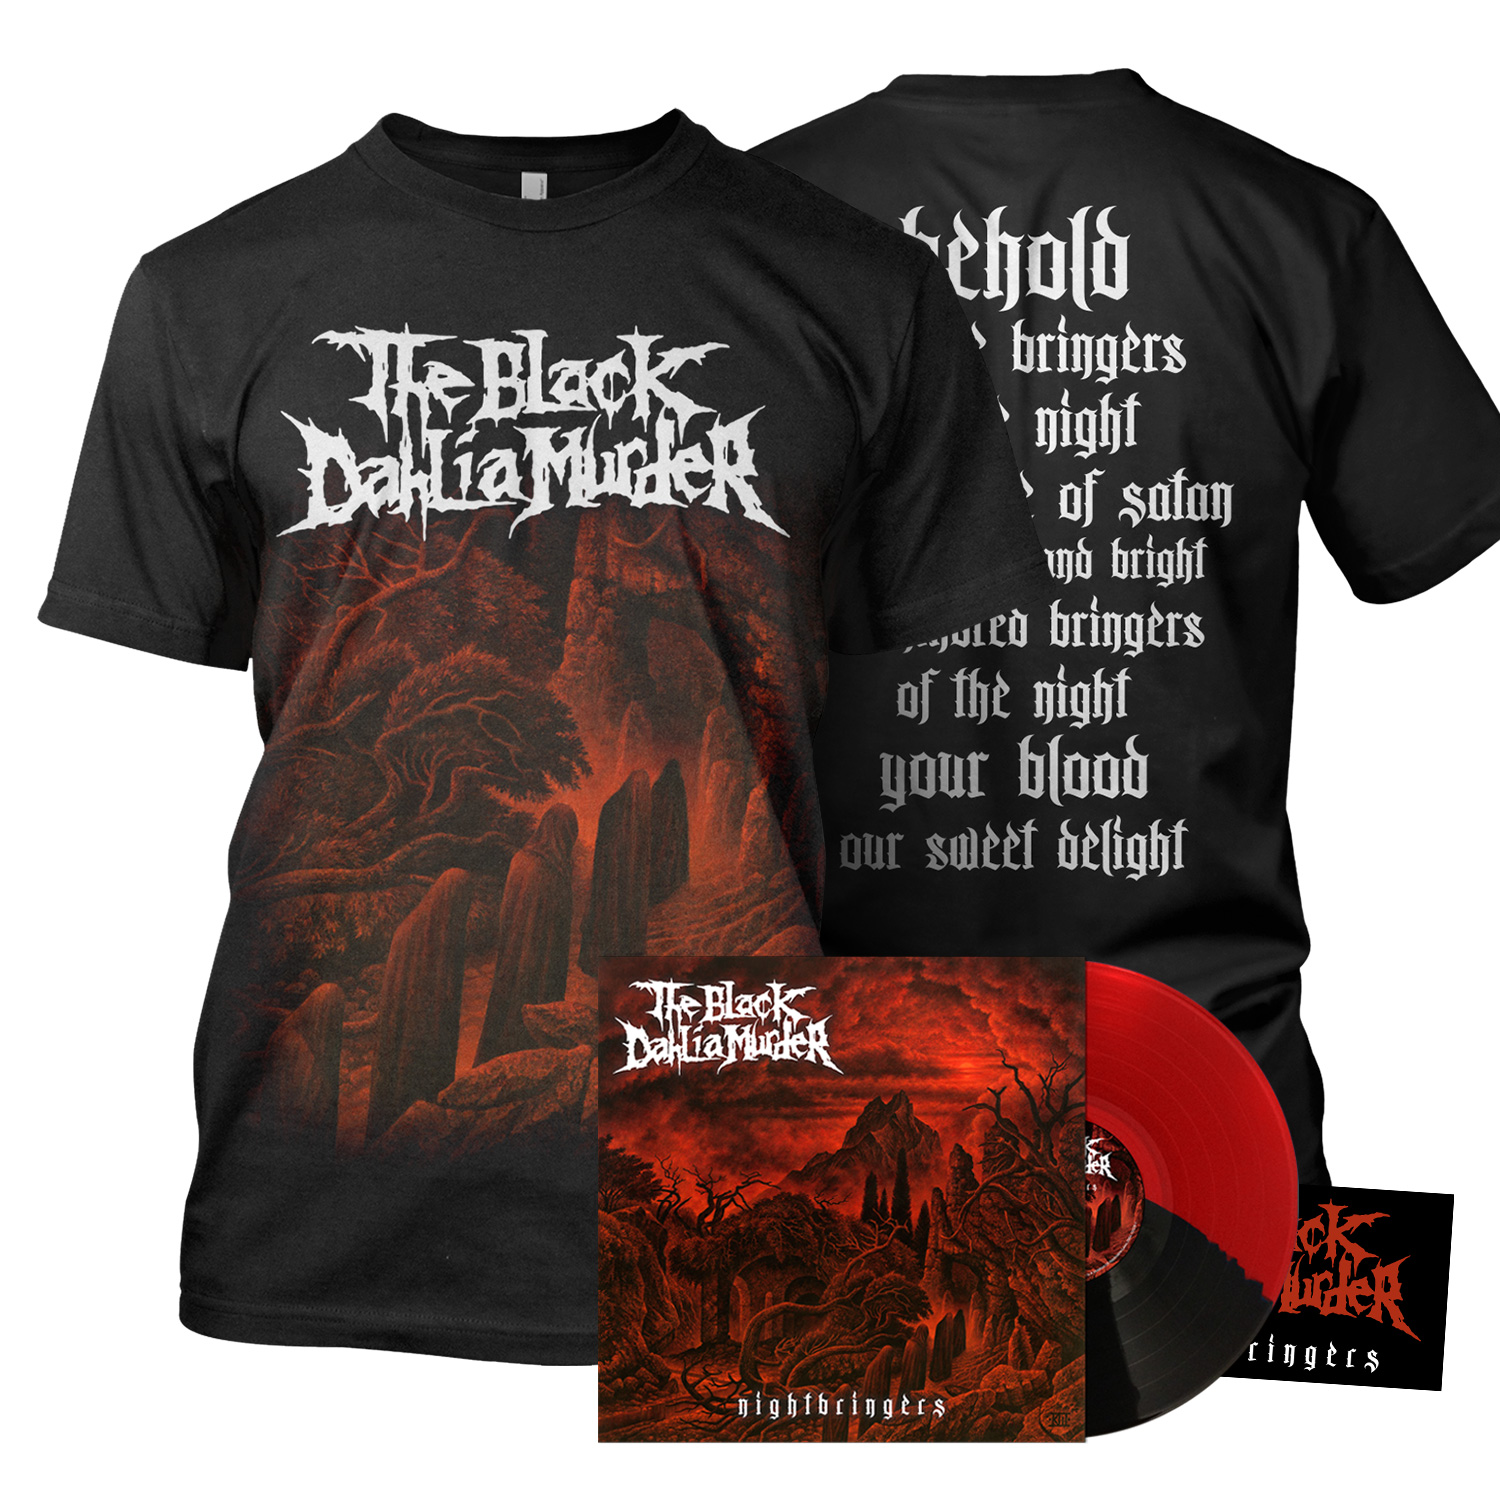 Nightbringers LP Bundle